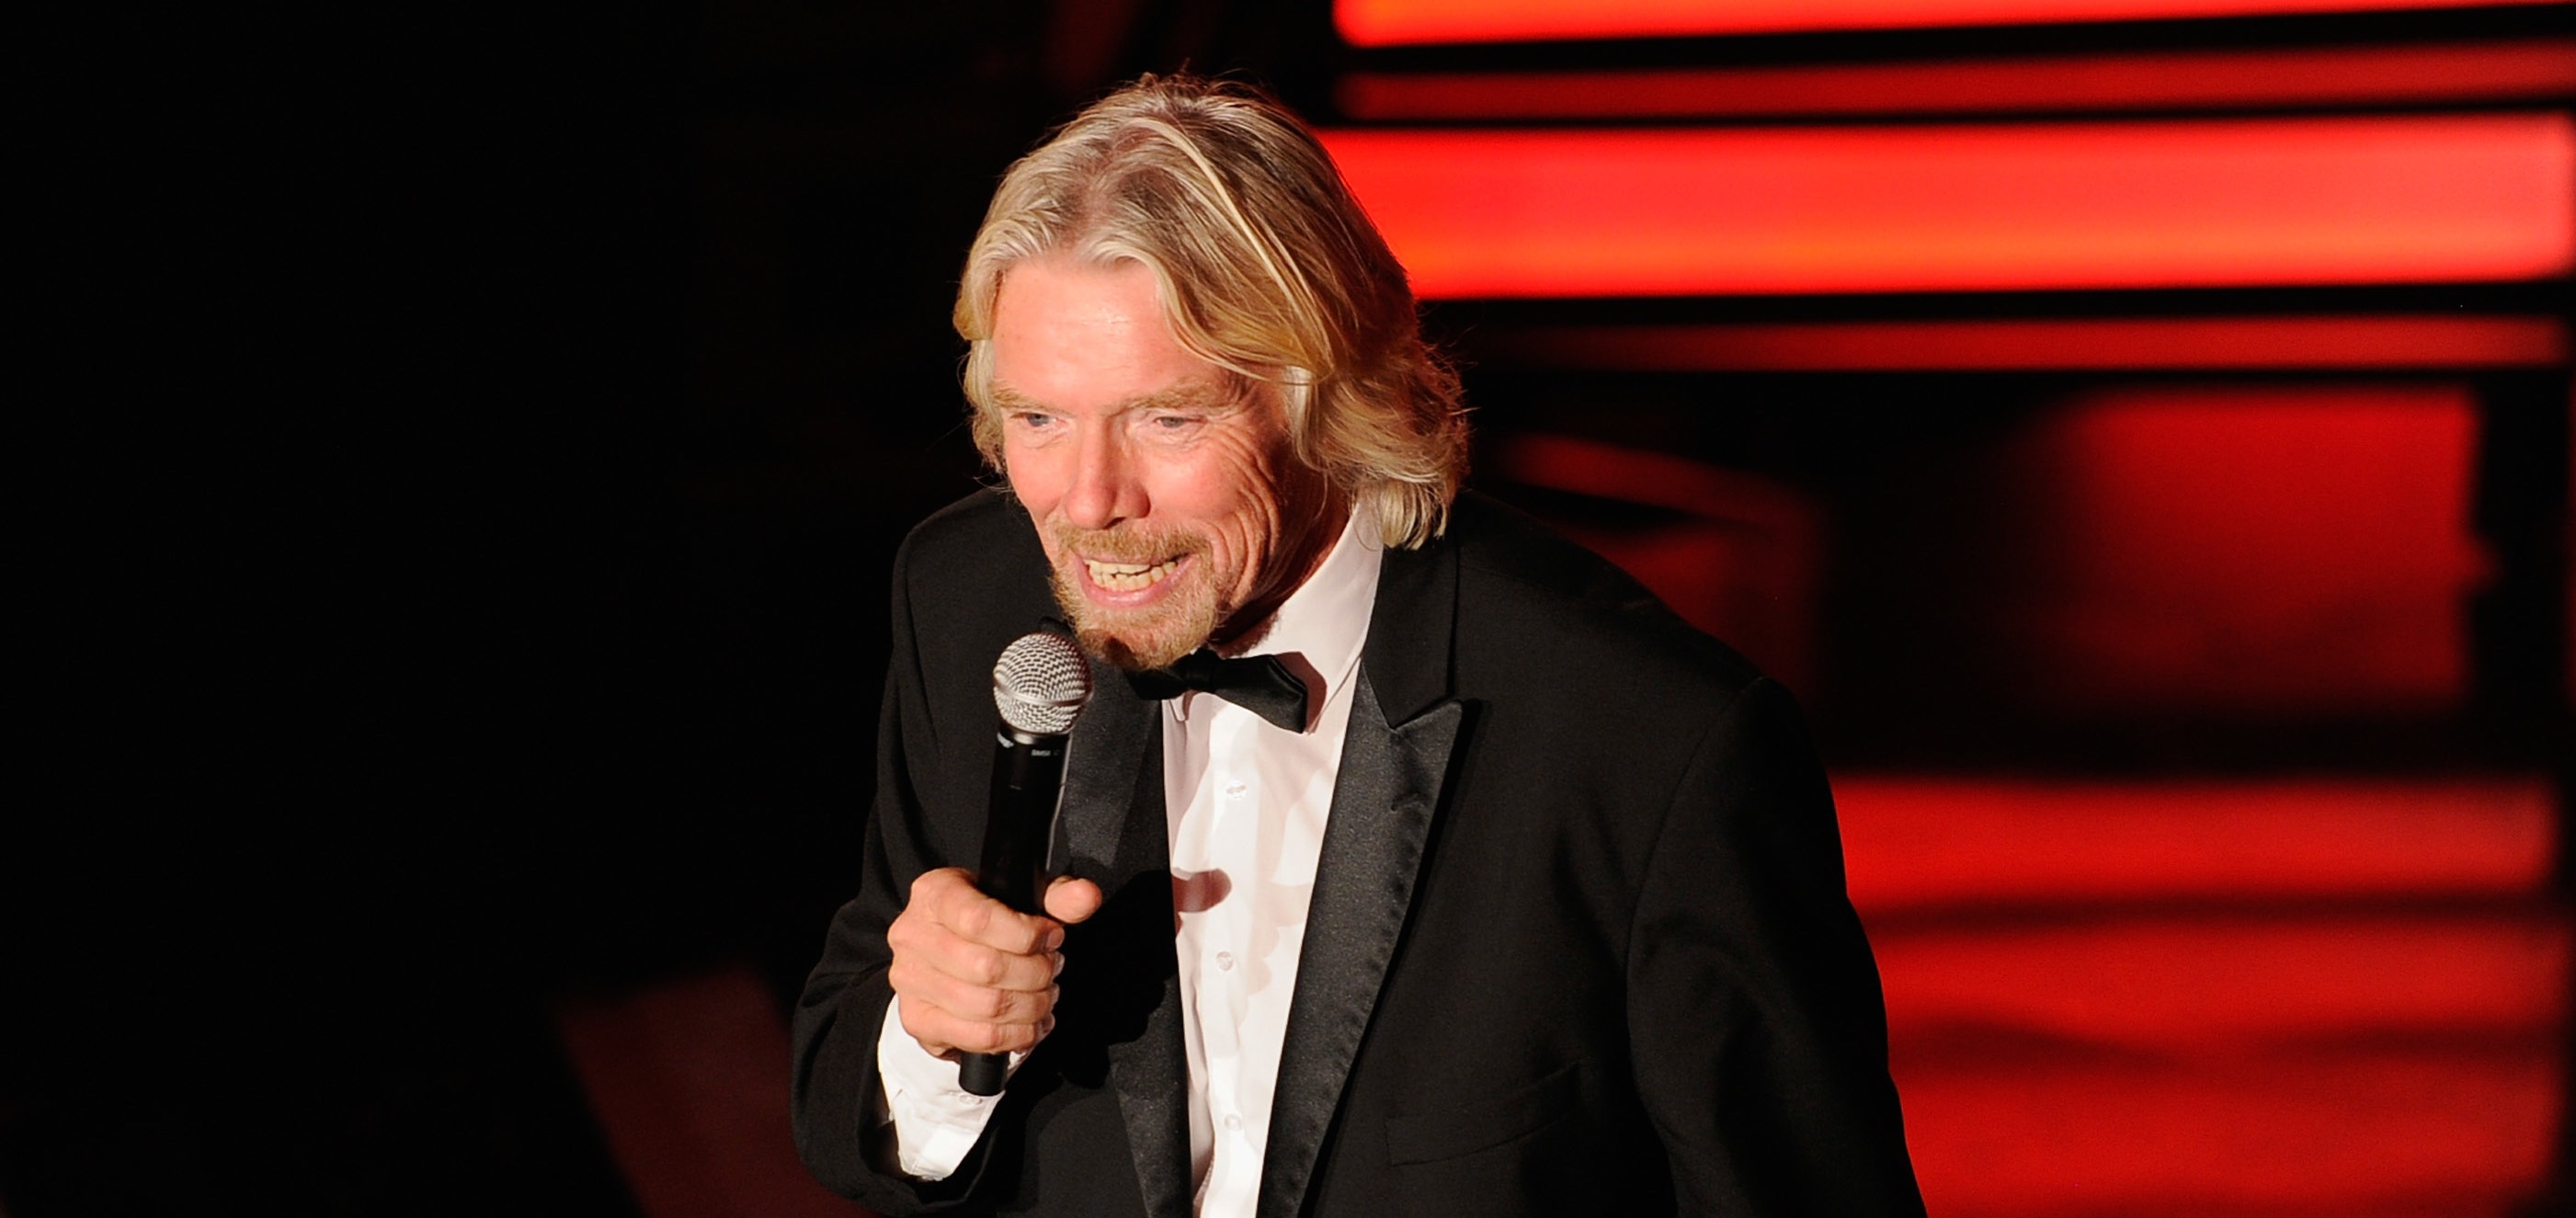 Richard Branson: Screw Business As Usual, And Make Your (Huge Piles Of) Money By Doing Good